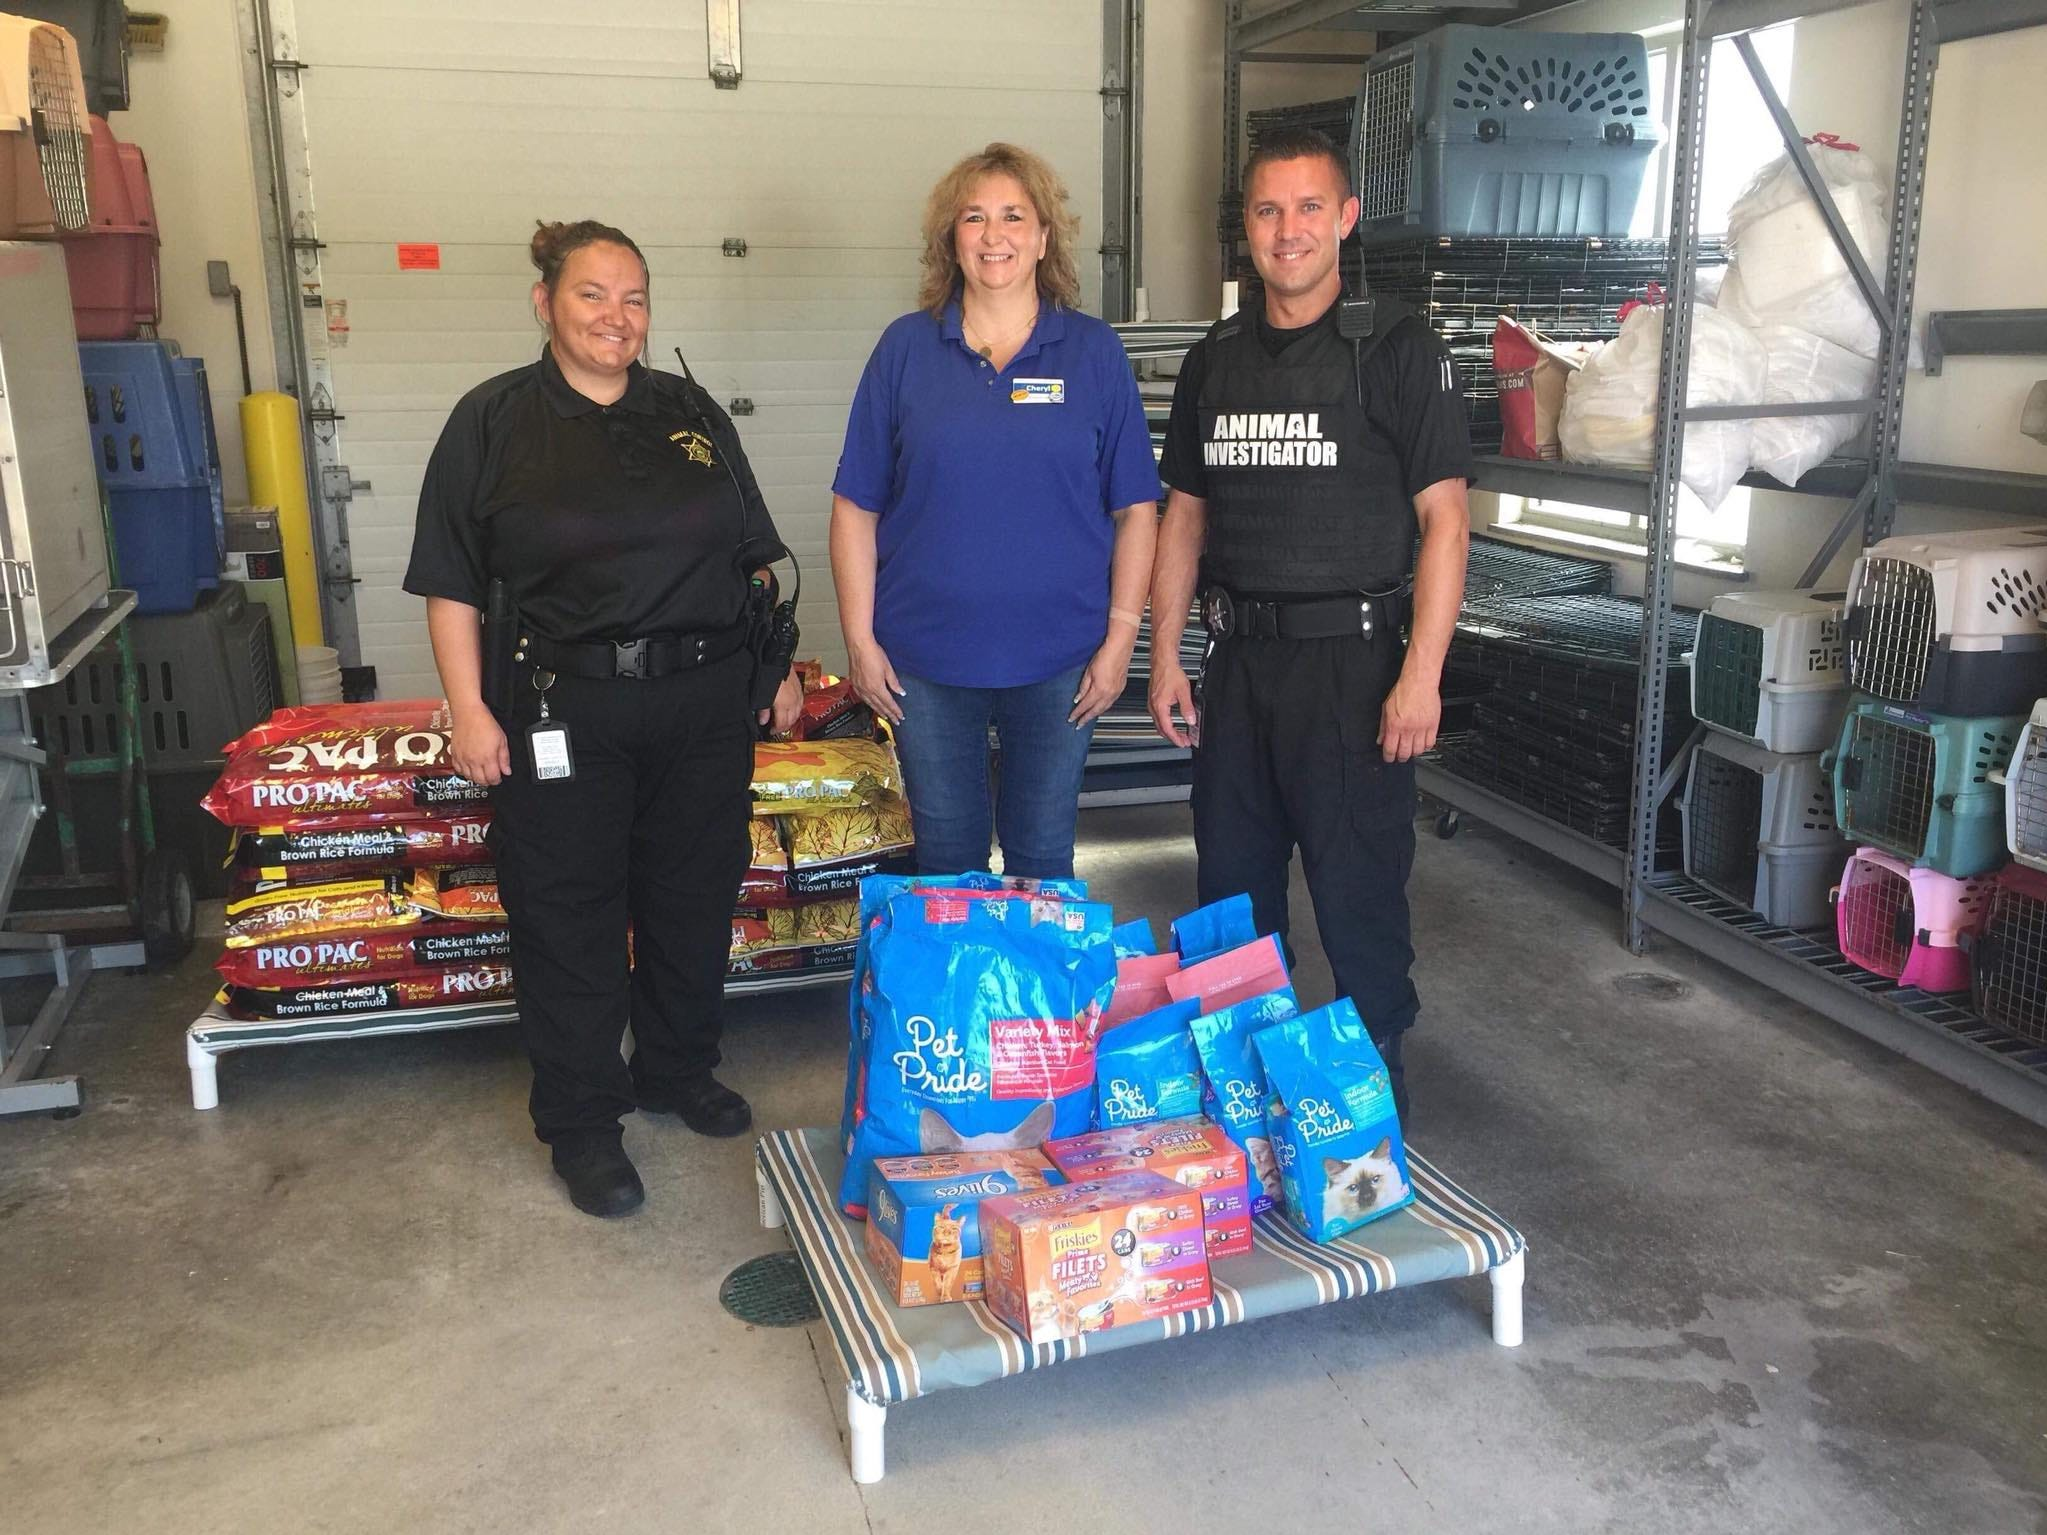 The Danville Kroger sent over supplies to help out the Hendricks County Animal Shelter.